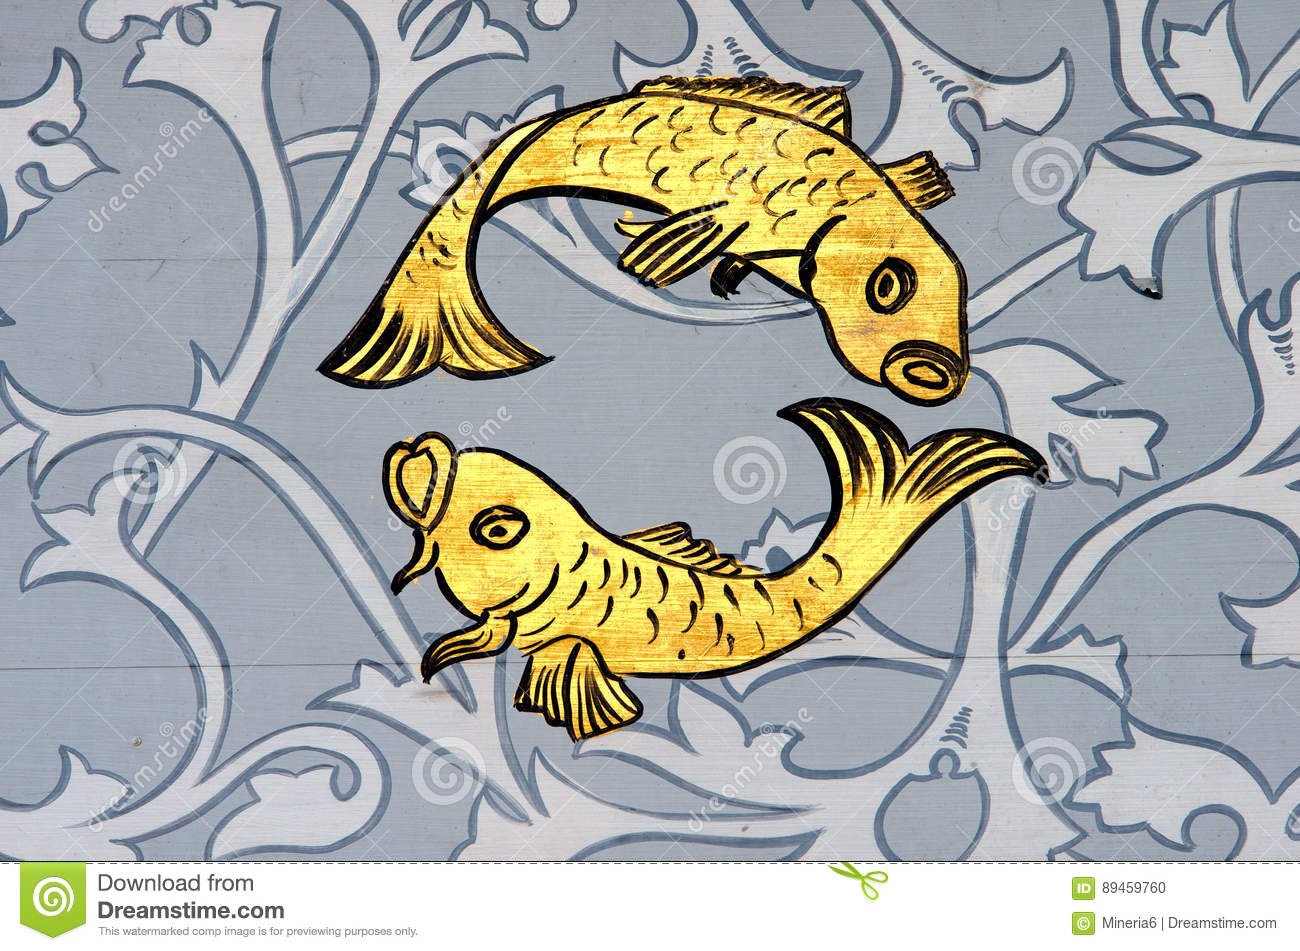 Pisces The Fish Zodiac Sign Stock Photo Image Of Graphic Zodiac